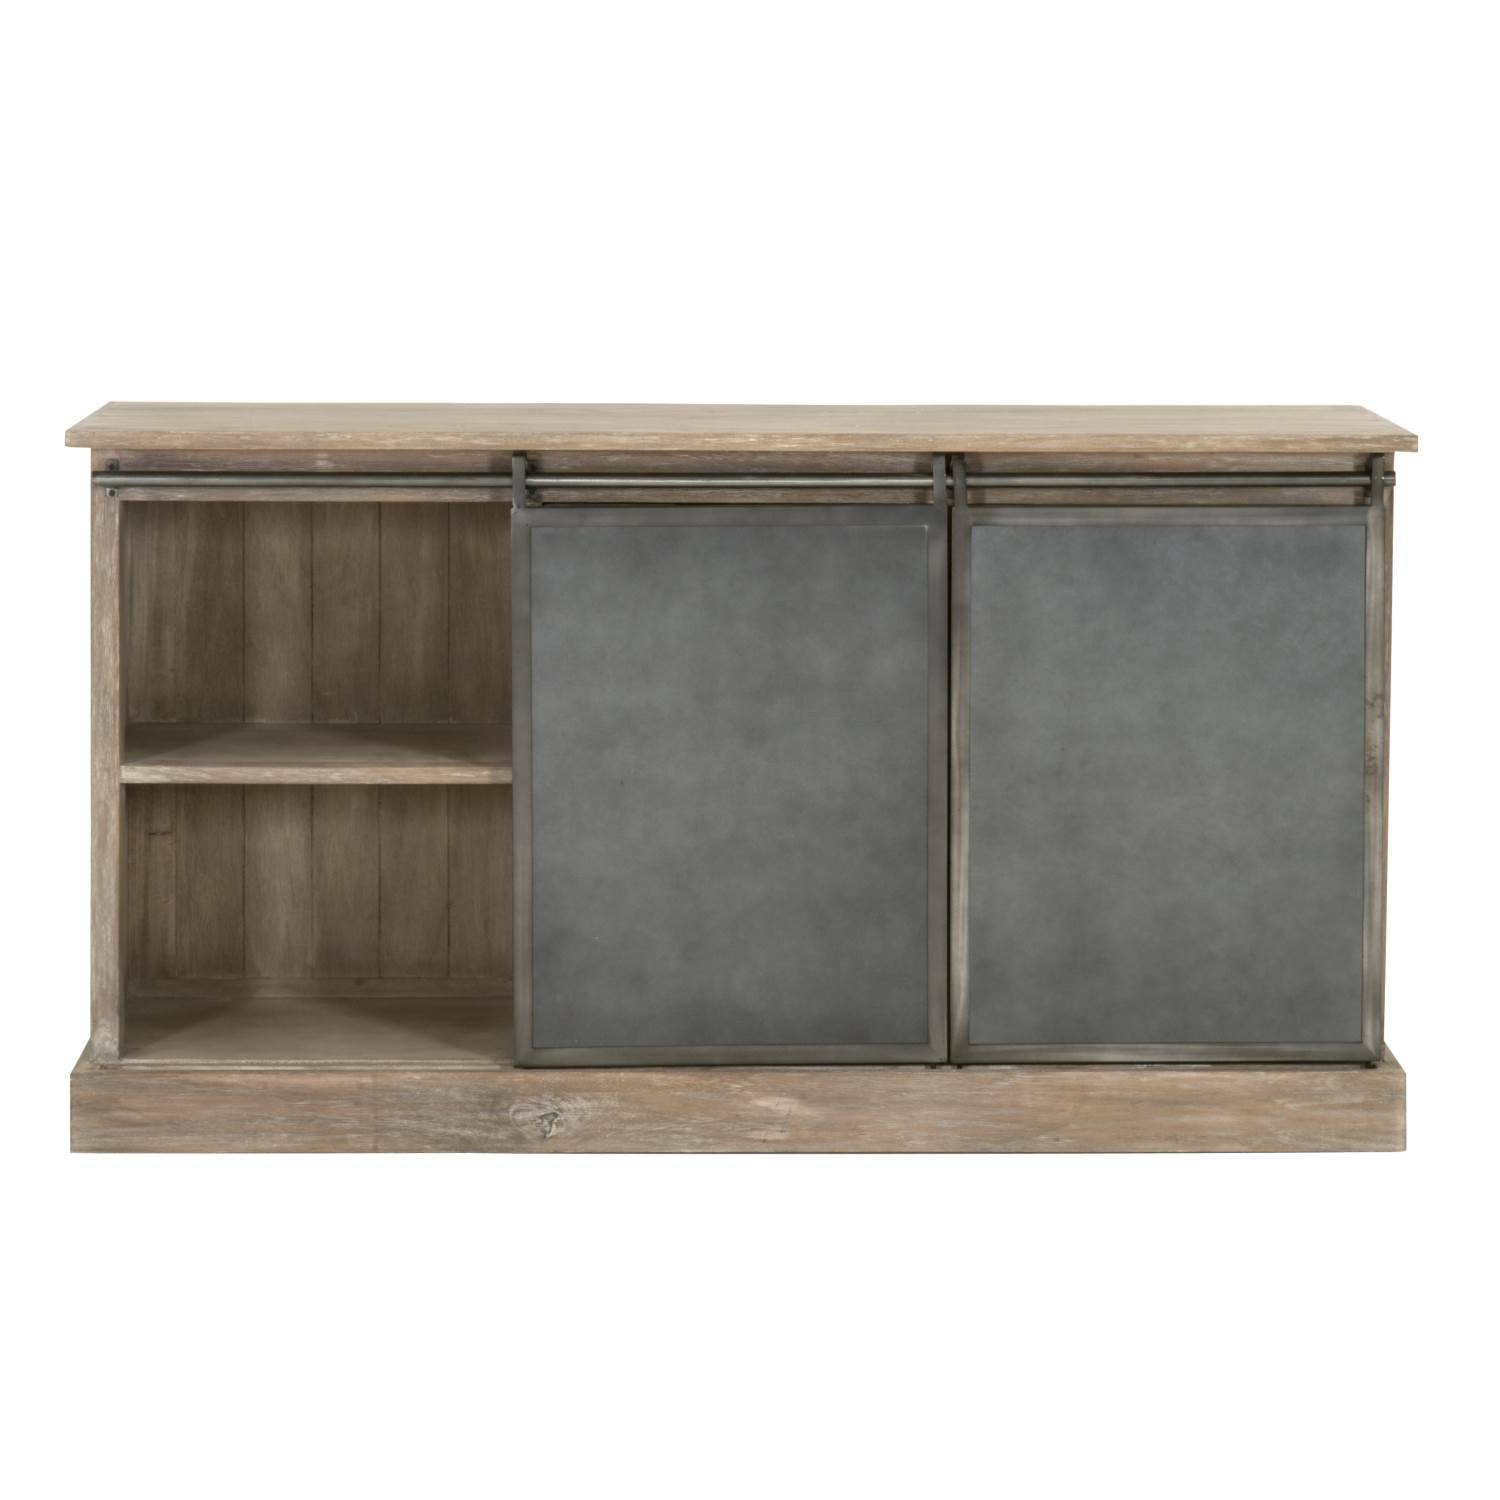 Bowery Sideboard Intended For Grey Wood Sideboard (#3 of 20)